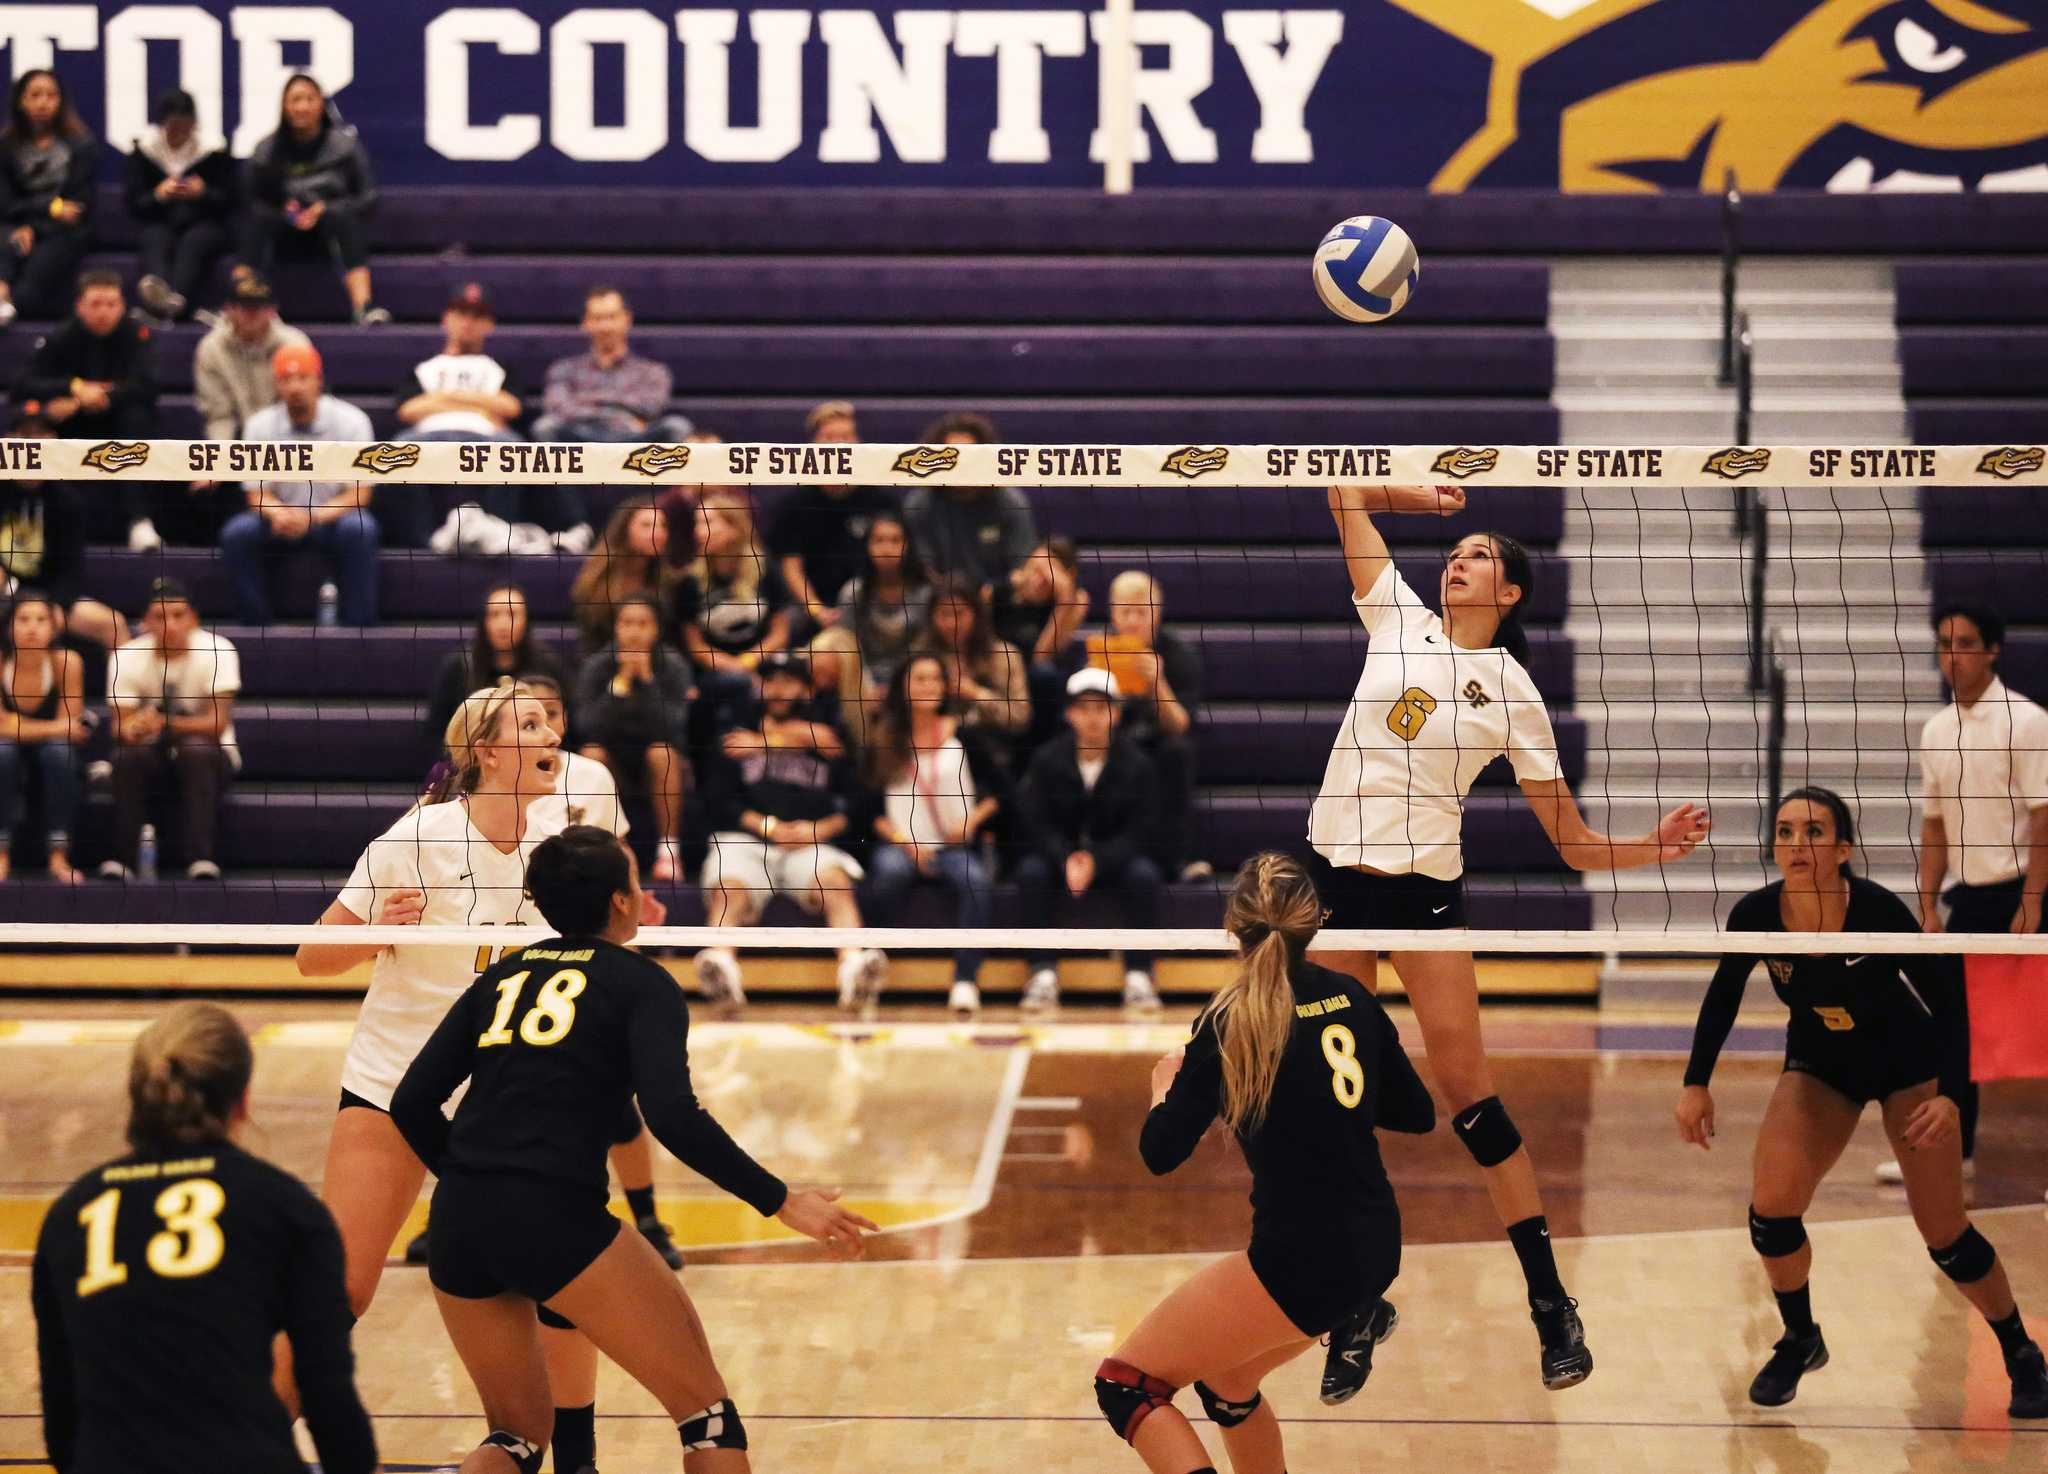 SF State Gators' Jaclyn Clark (6) prepares to strike the ball against the Cal State L.A. Golden Eagles during the second set of the match at the Swamp Friday October 2. SF State won 3-1. (Joel Angel Juárez / Xpress)